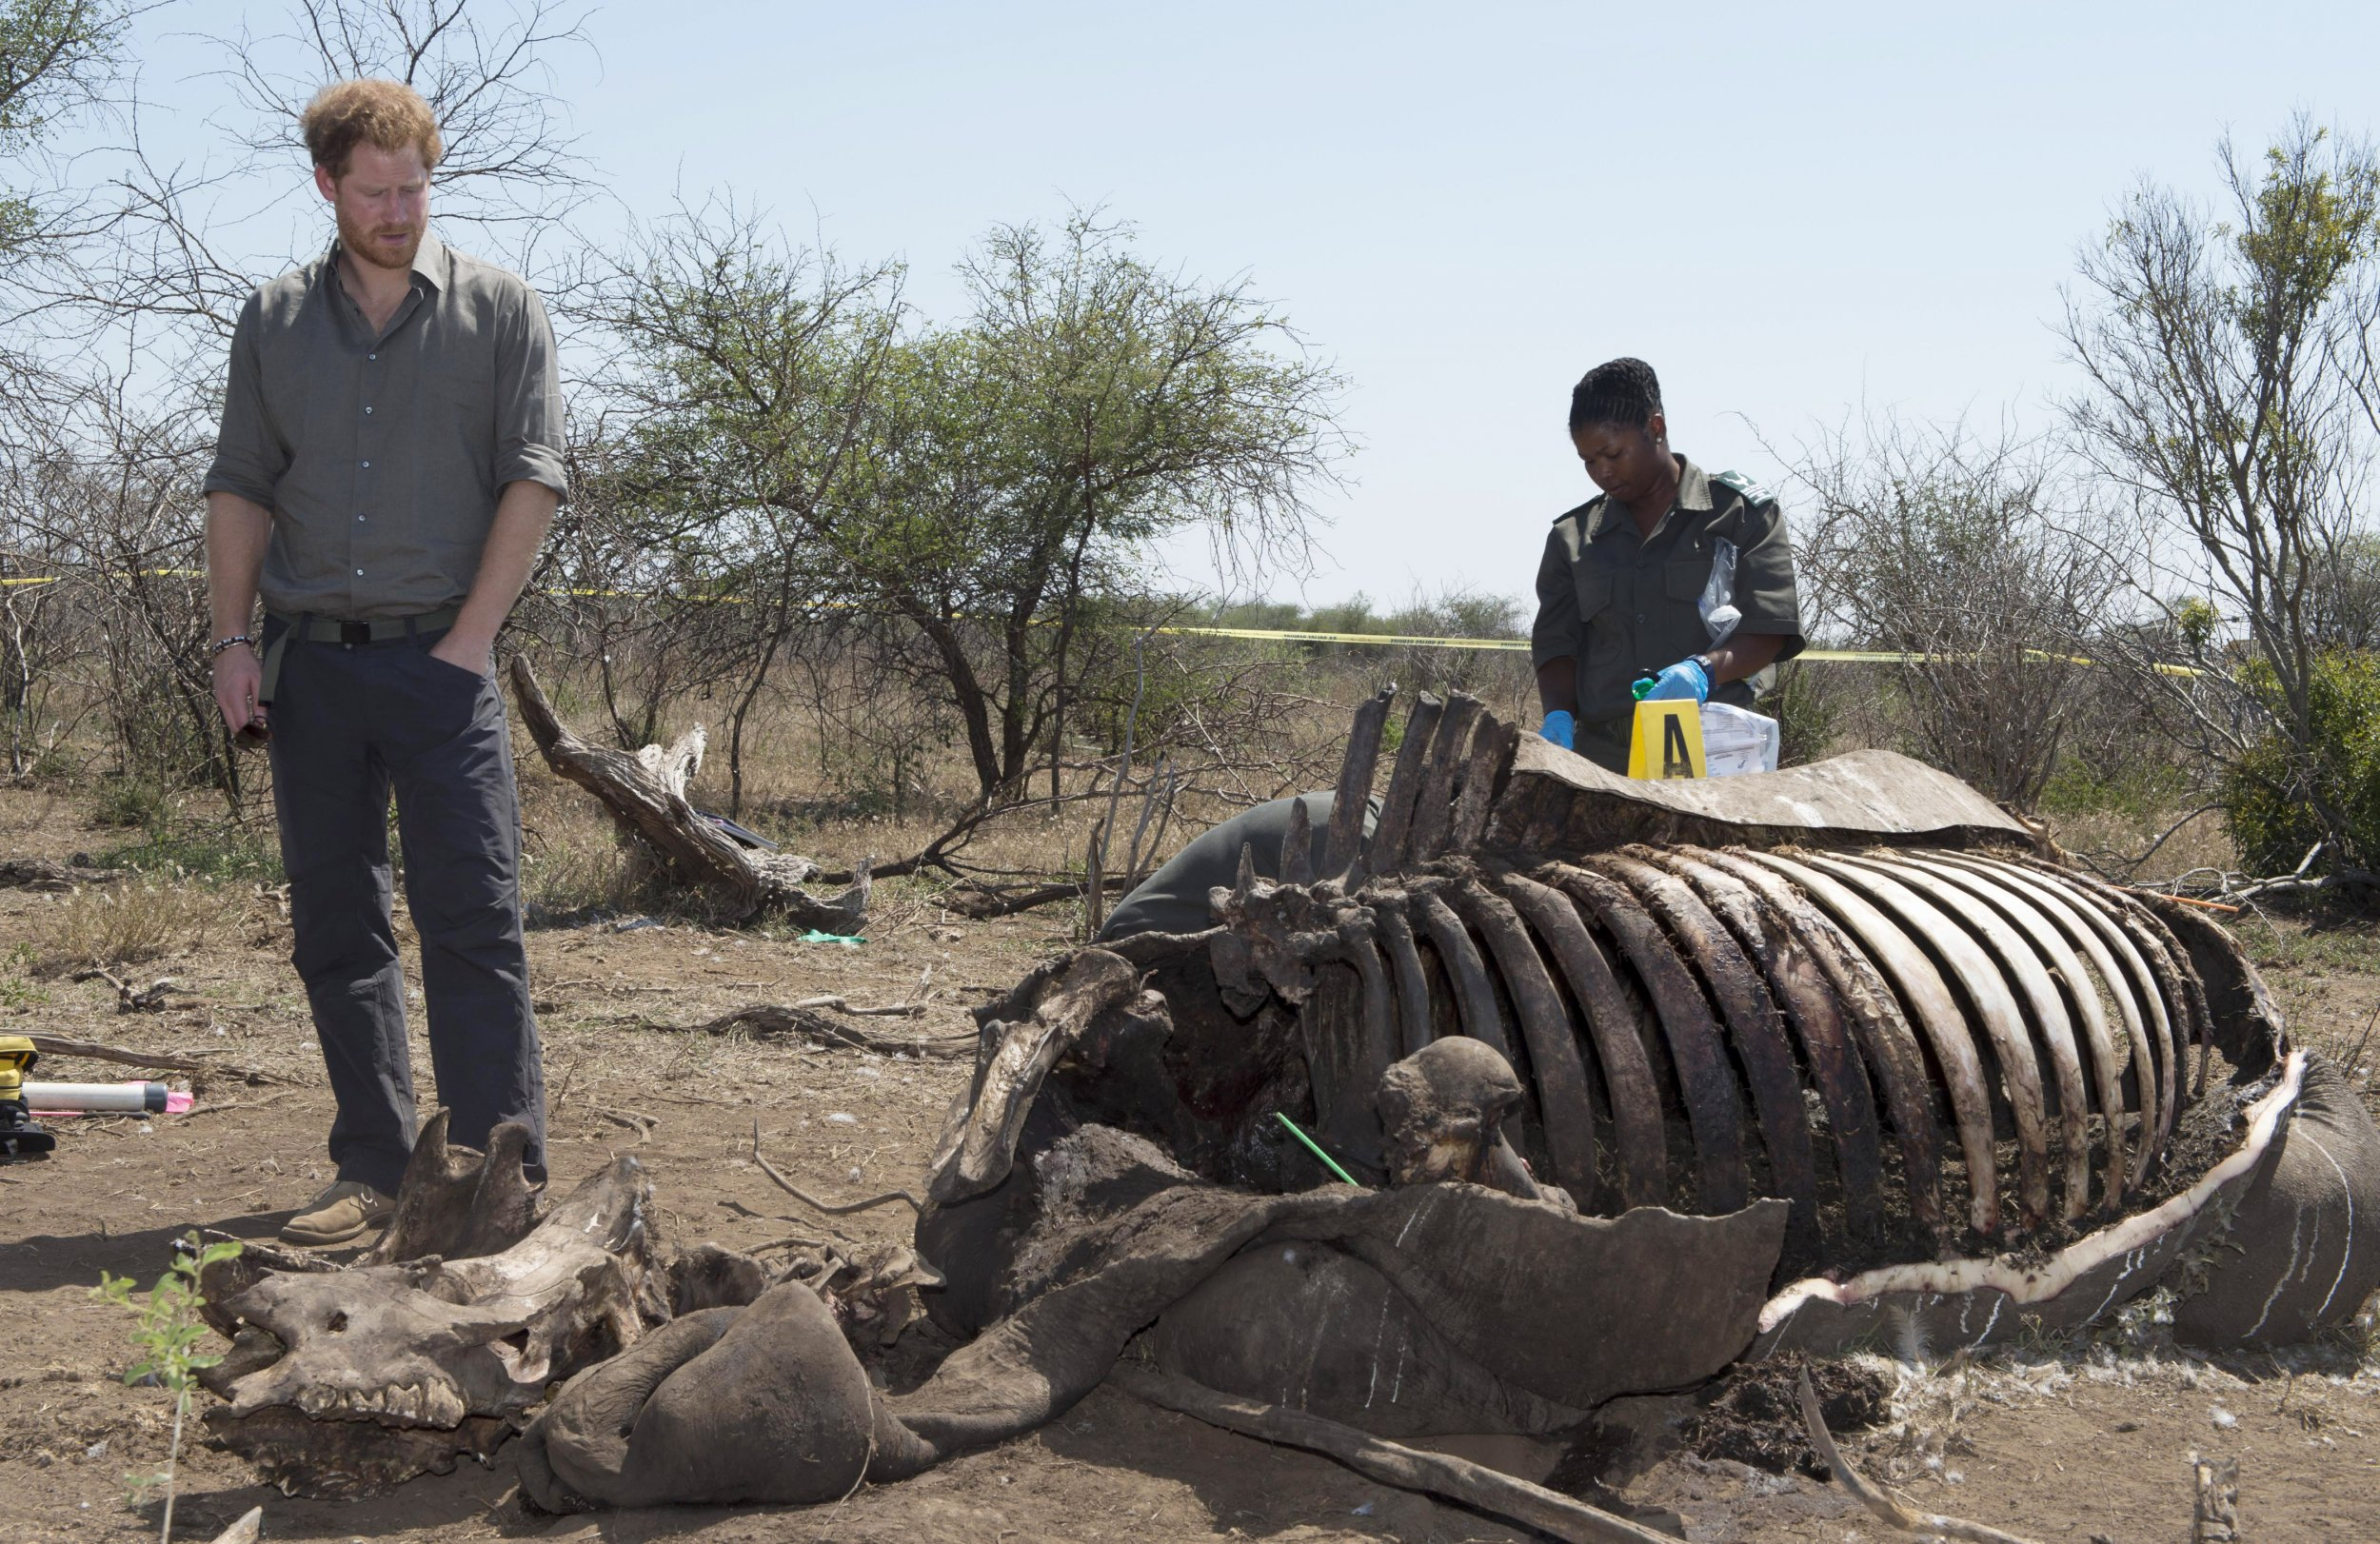 Prince Harry looks at the carcass of a rhino killed by poachers.